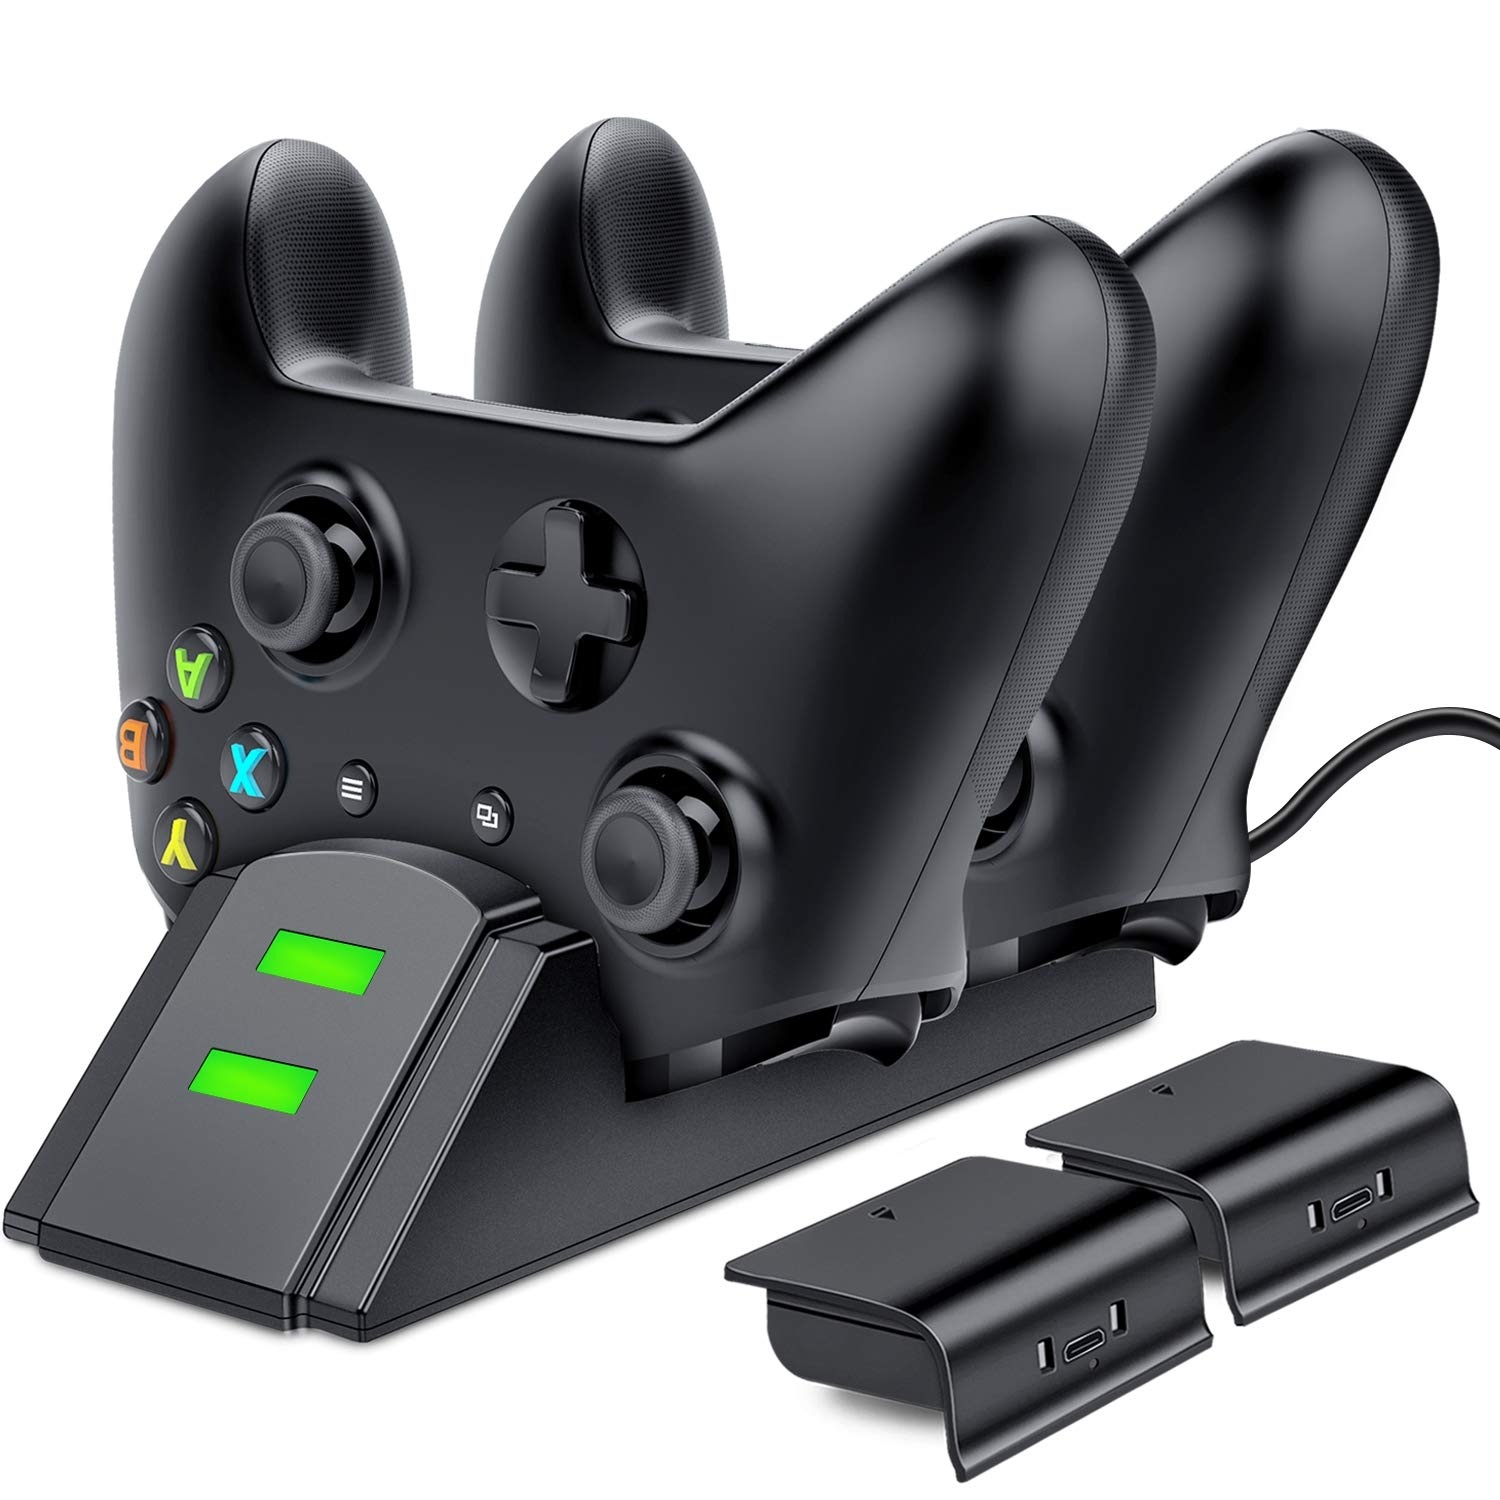 ESYWEN Xbox One Controller Charger Dual Xbox Controller Charging Station with 2X 800mAh Rechargeable Battery Packs for Xbox One/One S/One X/Xbox Elite Controller by ESYWEN